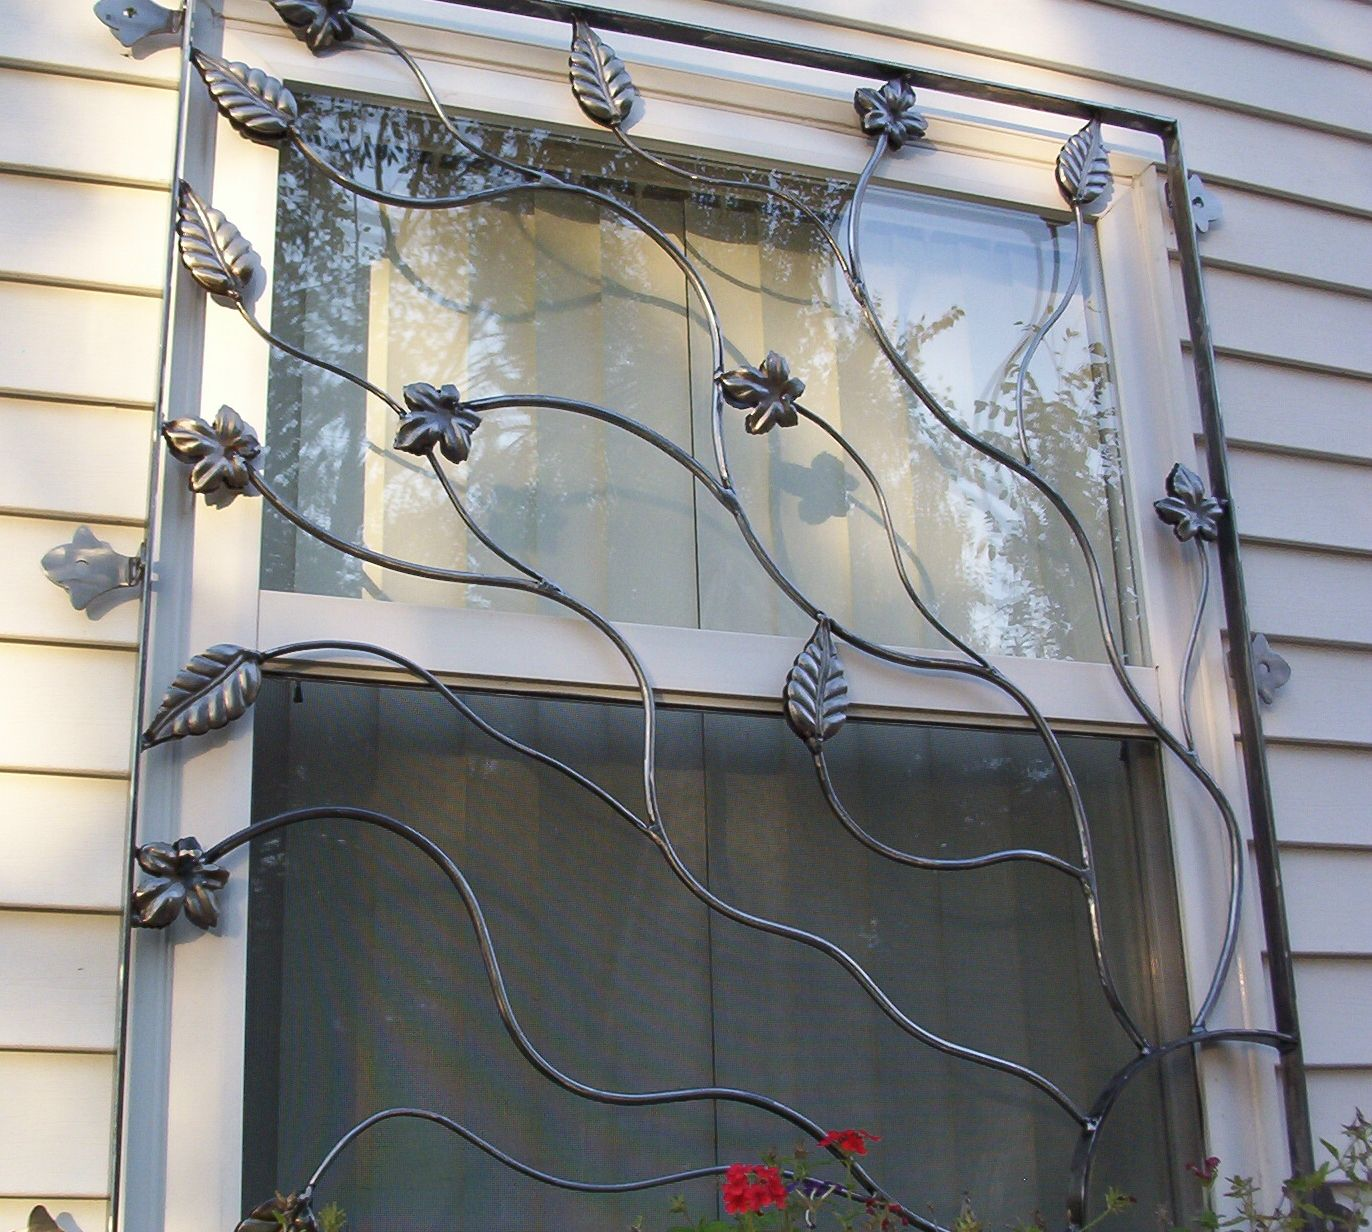 Cast iron security bars for window leaves and vines